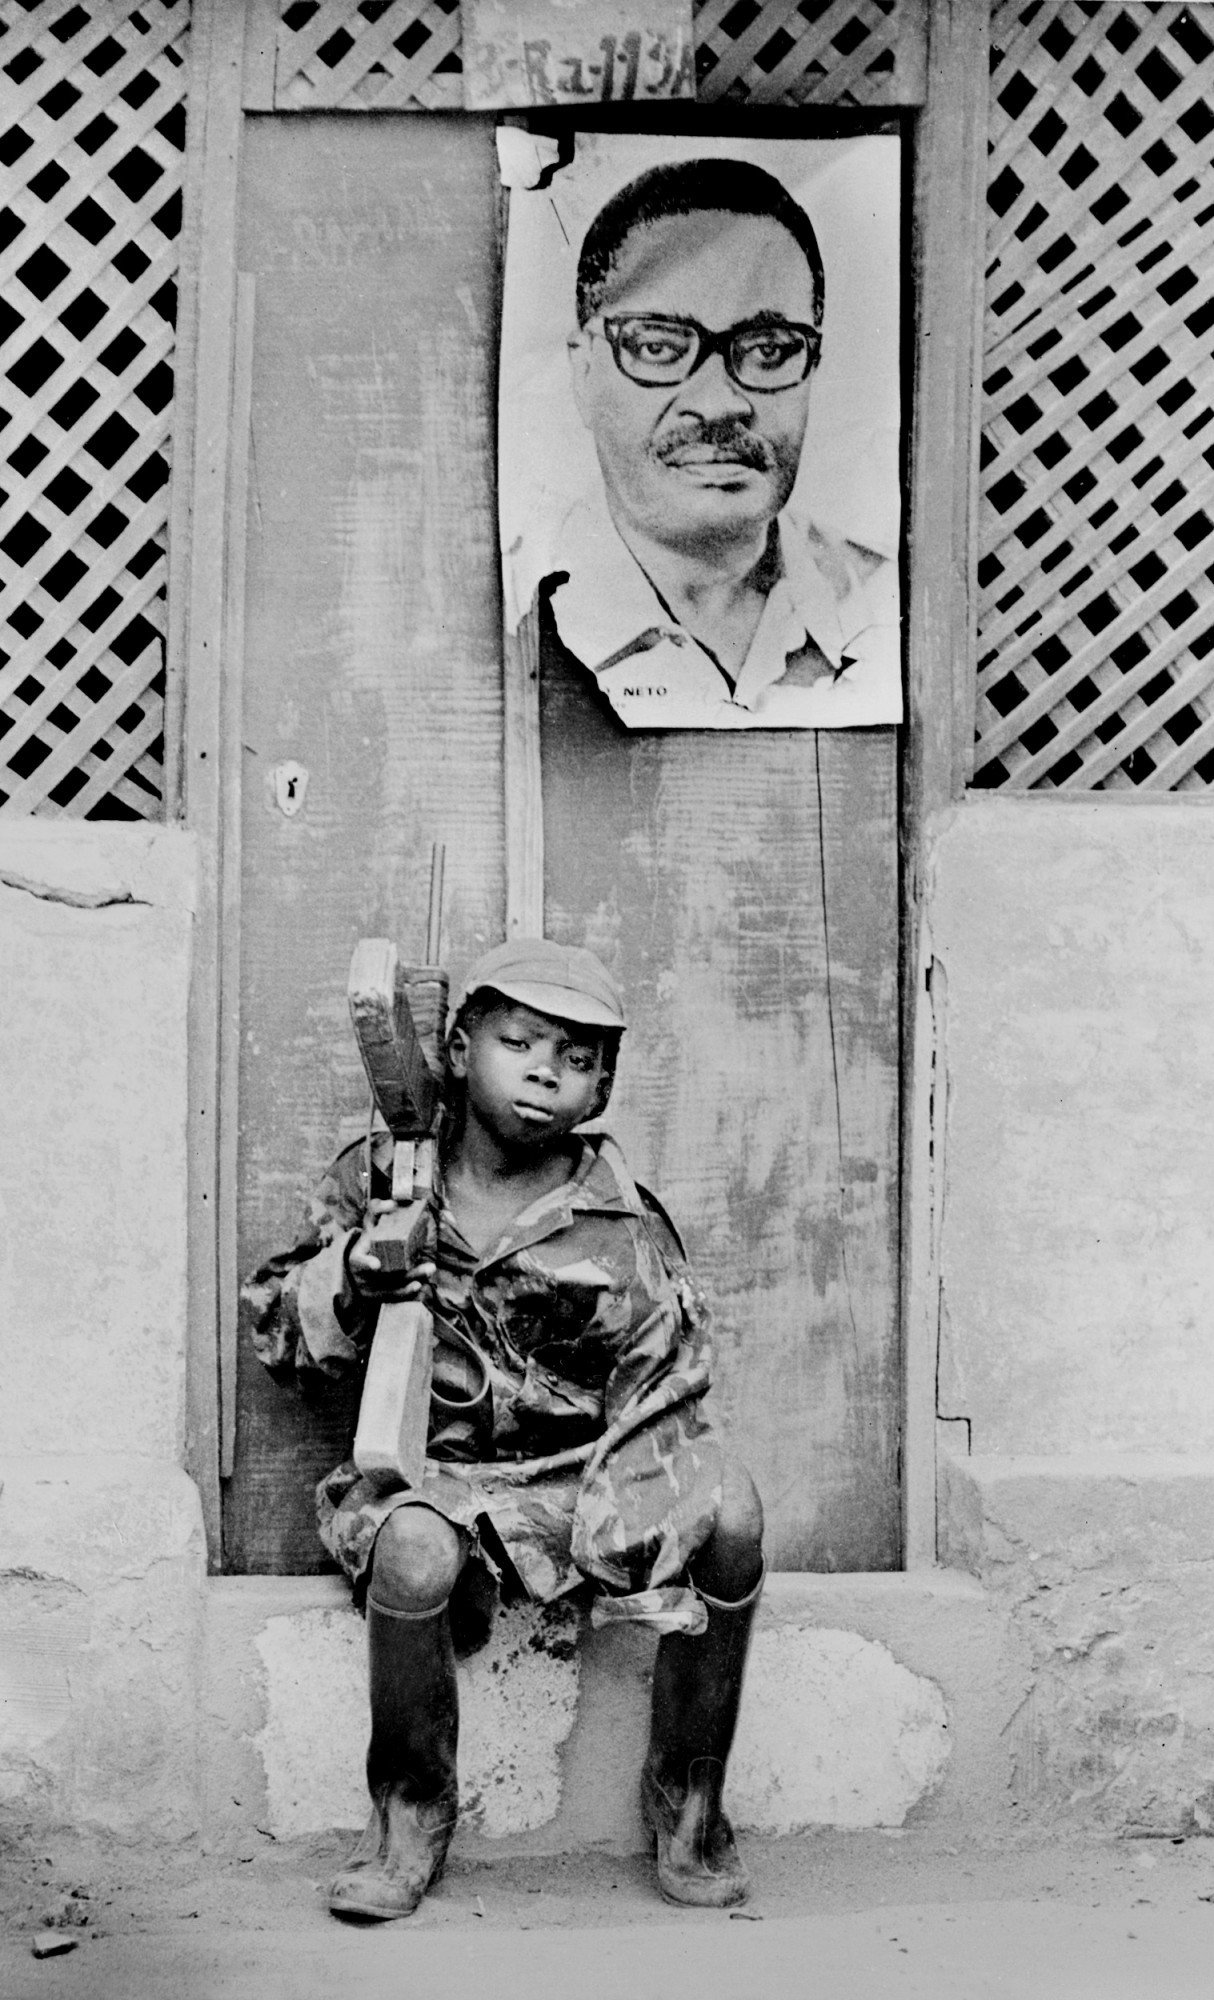 HUAMBO, ANGOLA:  A young soldier of the Popular Movement for the Liberation of Angola (MPLA) is seated on a doorstep 23 February 1976 in Huambo. Over his heads hangs the portrait of his leader Agostinho Neto. Former Portuguese colony, the Republic of Angola went to a civil war after its independence in1975, with three infernal factions, the Marxists MPLA, UNITA (The National Union for the Total Independence of Angola) and the FLNA (National Front for the Liberation of Angola).  Un jeune soldat du Mouvement Populaire de LibTration de l'Angola (MPLA) est assis sur le pas d'une porte le 23 fTvrier 1976 a Huambo. Au dessus de lui, est accrochT un portrait de son leader Agostinho Neto. Ancienne colonie portugaise, la RTpublique d'Angola connait aprFs son indTpendance en 1975 une guerre civile opposant trois factions, les marxistes MPLA, l'UNITA (Union National pour l'IndTpendance Totale de l'Angola) et le FLNA (Front National de LibTration de l'Angola). (Photo credit should read AFP/Getty Images)